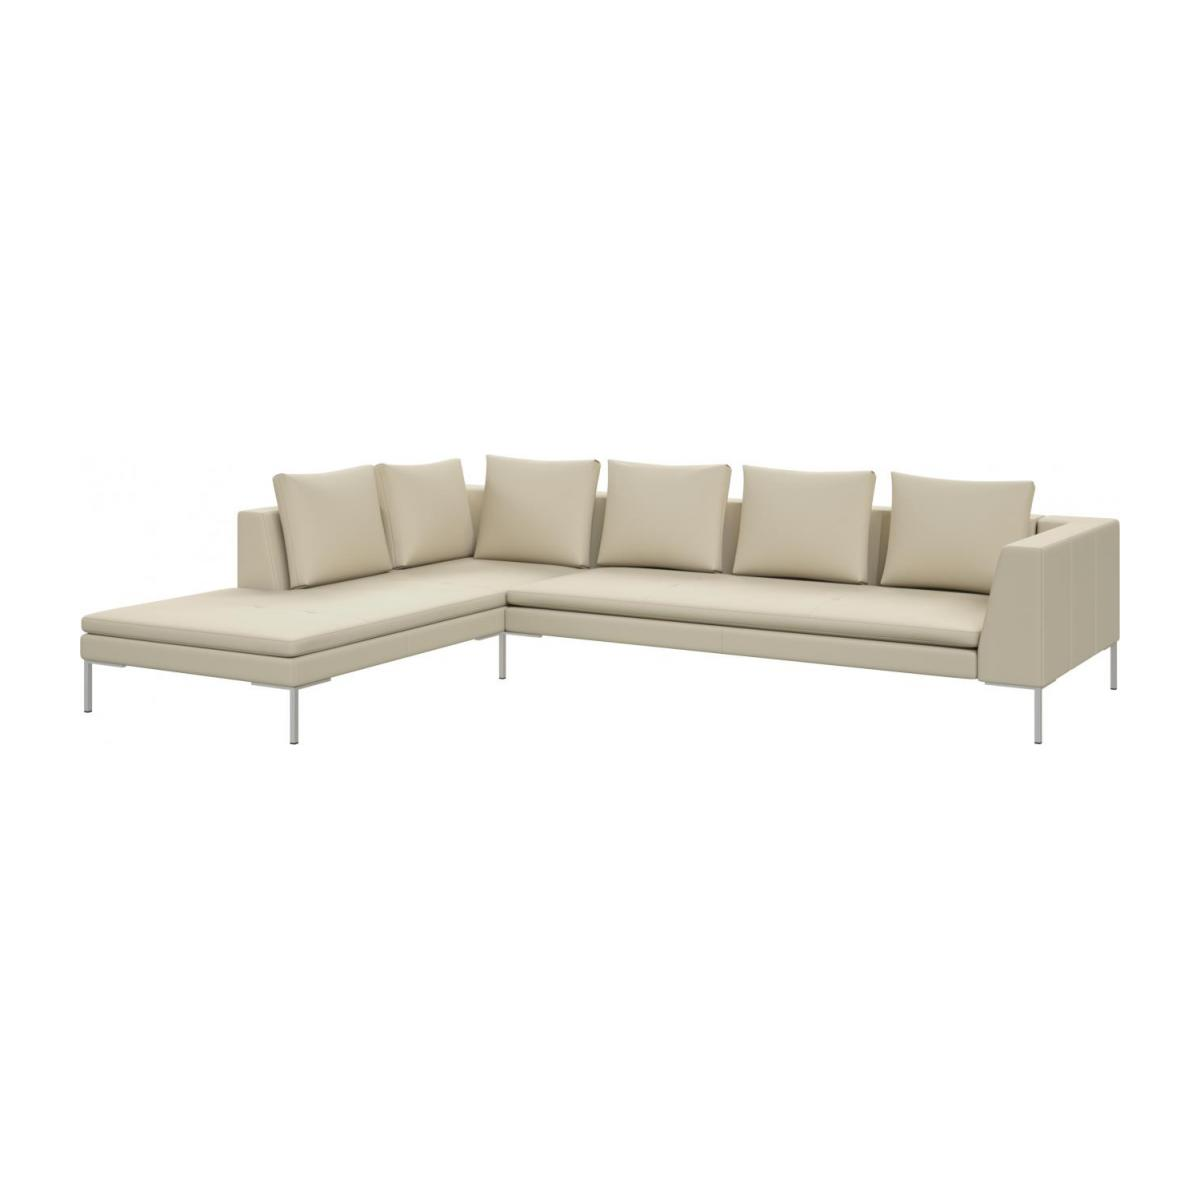 3 seater sofa with chaise longue on the left in Savoy semi-aniline leather, off white  n°1